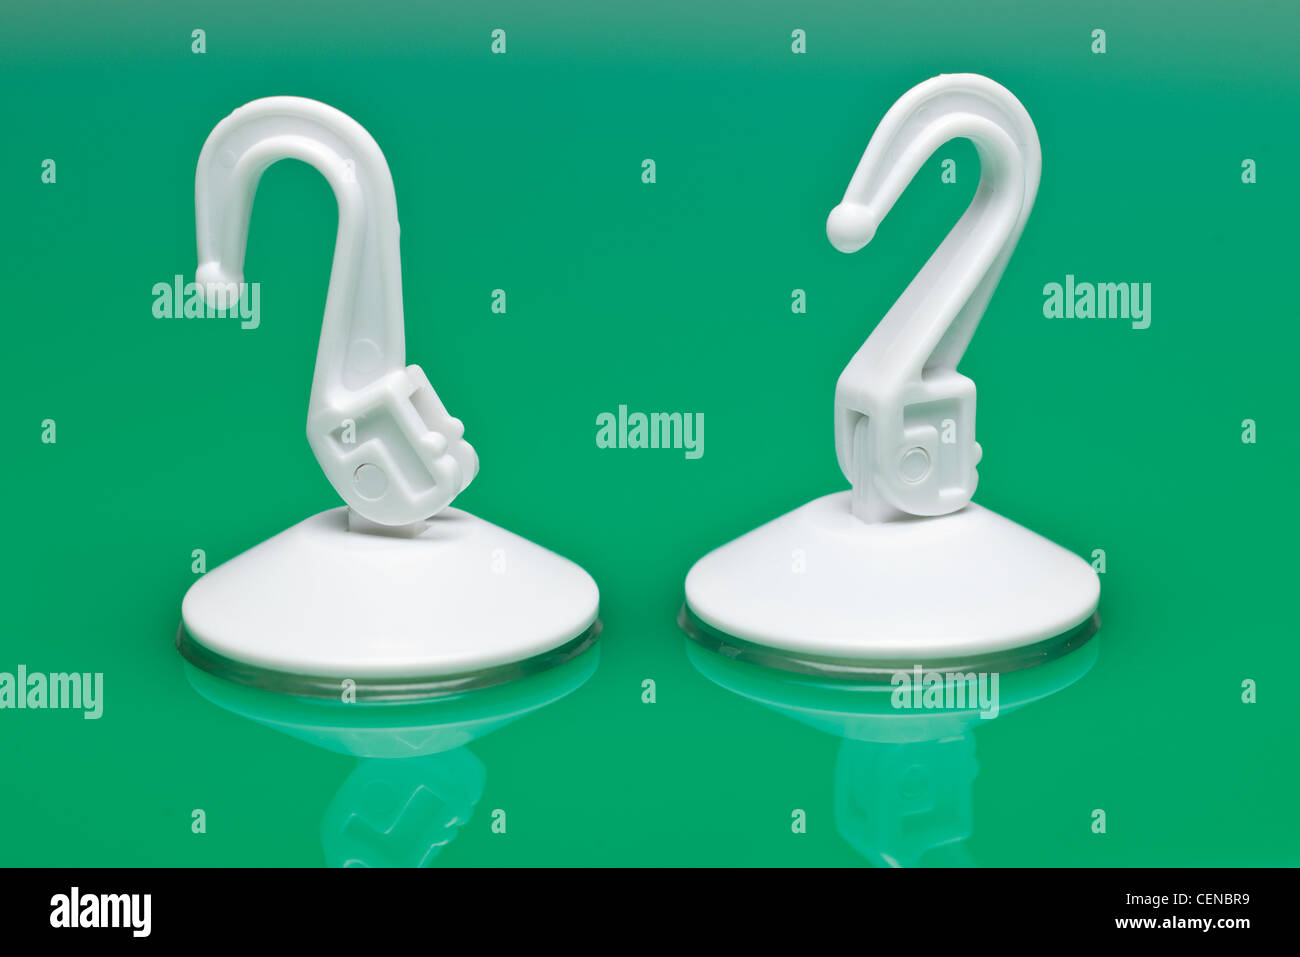 stock photo two pressure suction cup hook holders